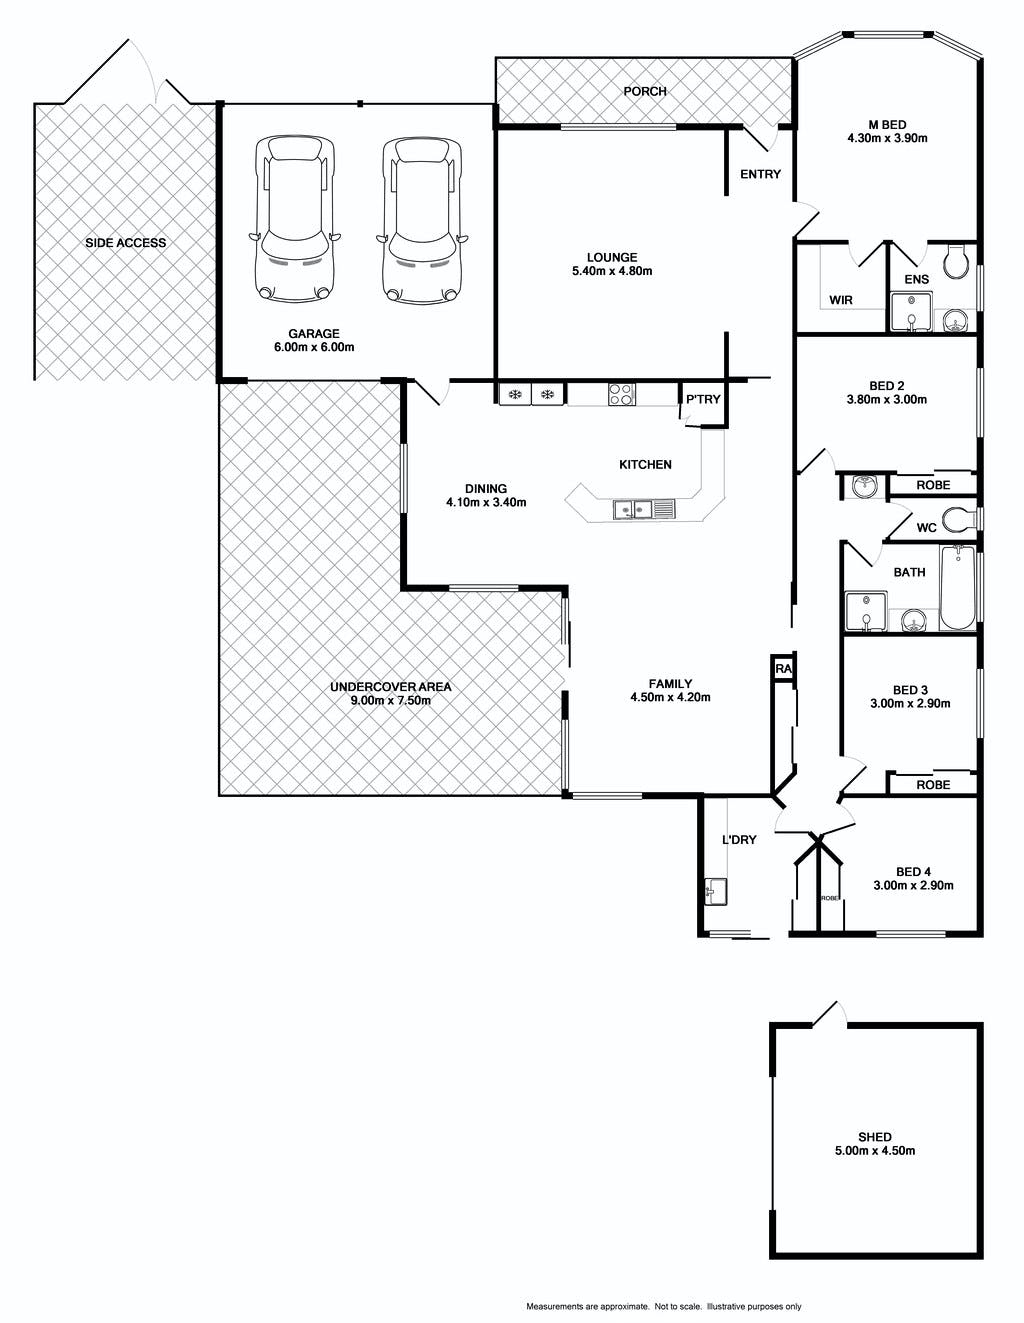 Address Upon Request For Sale